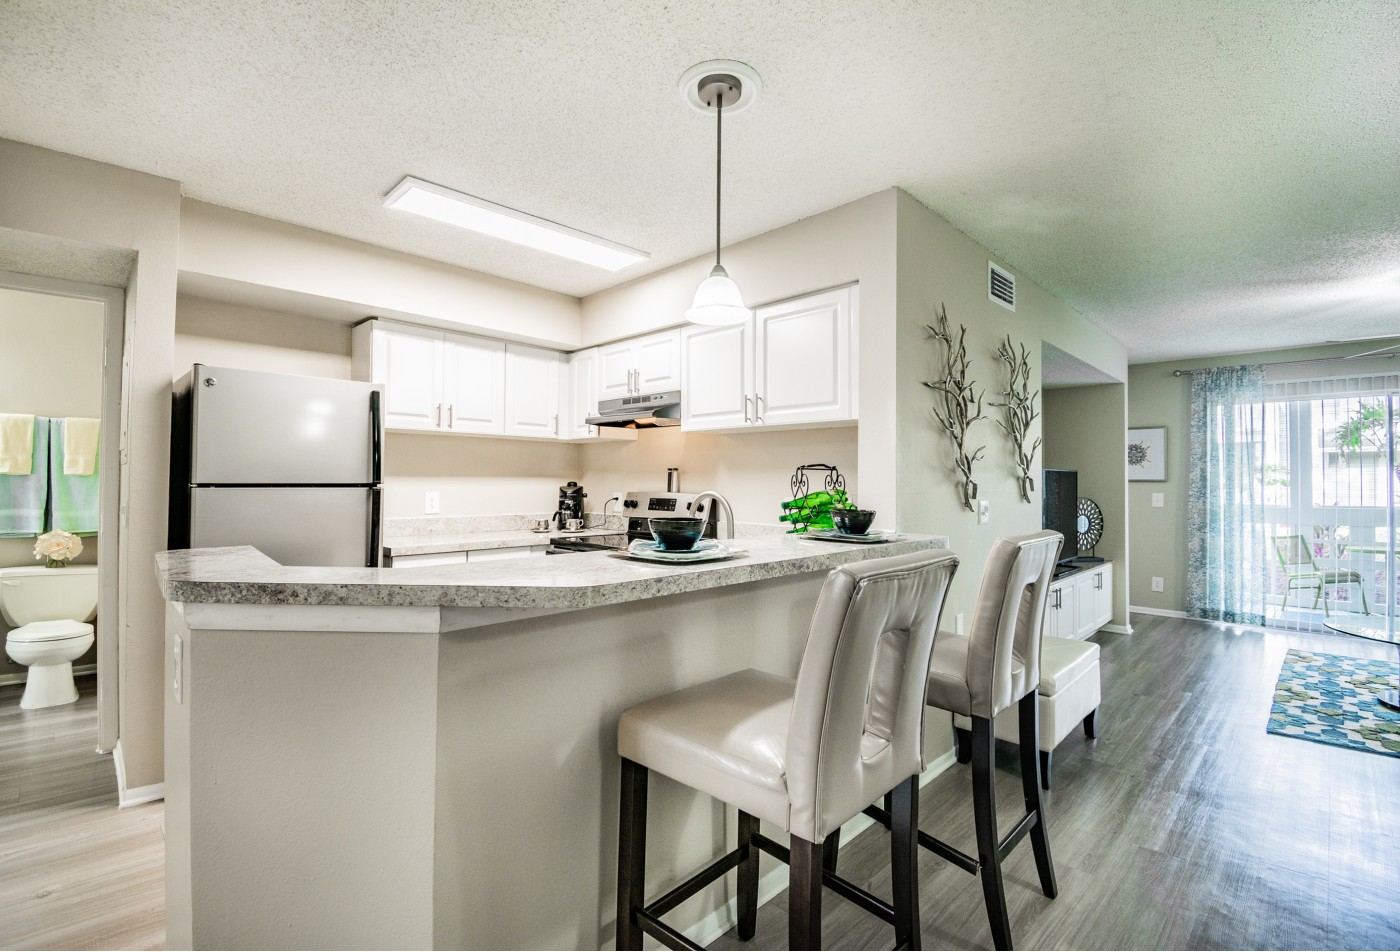 Furnished model kitchen area with bar and barstool seating and decor